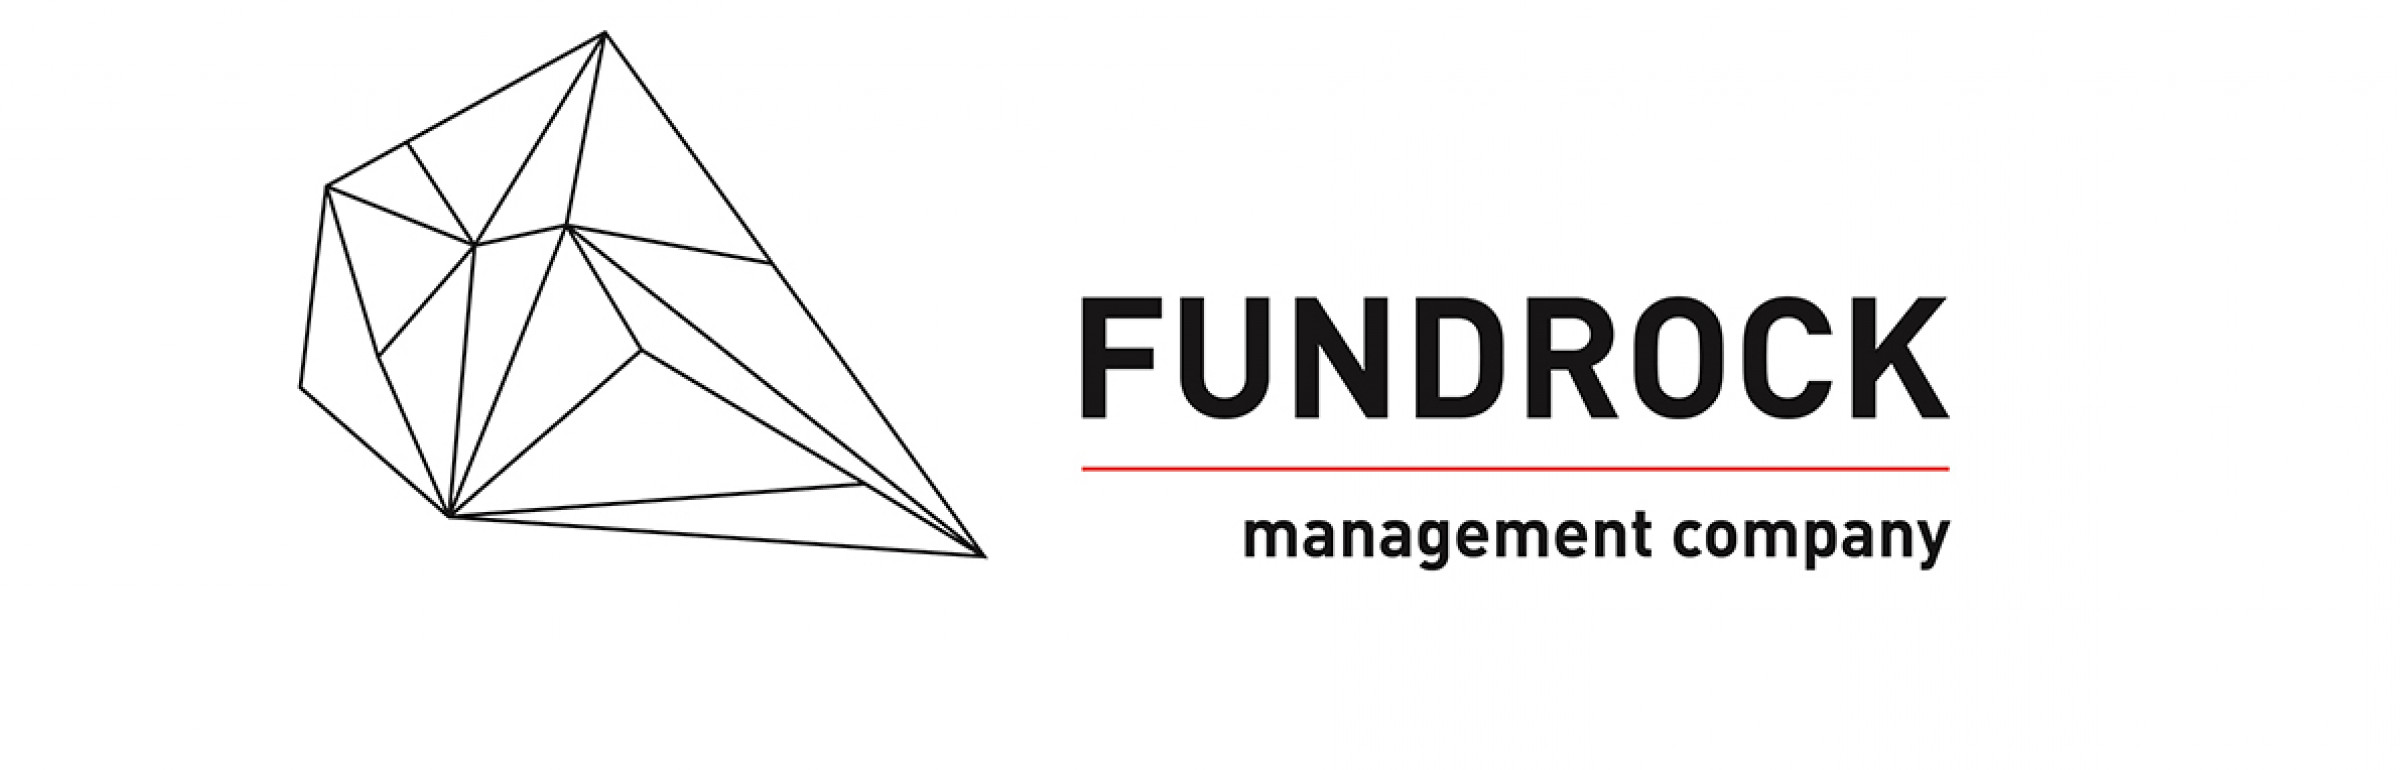 Banner FundRock Management Company S.A.